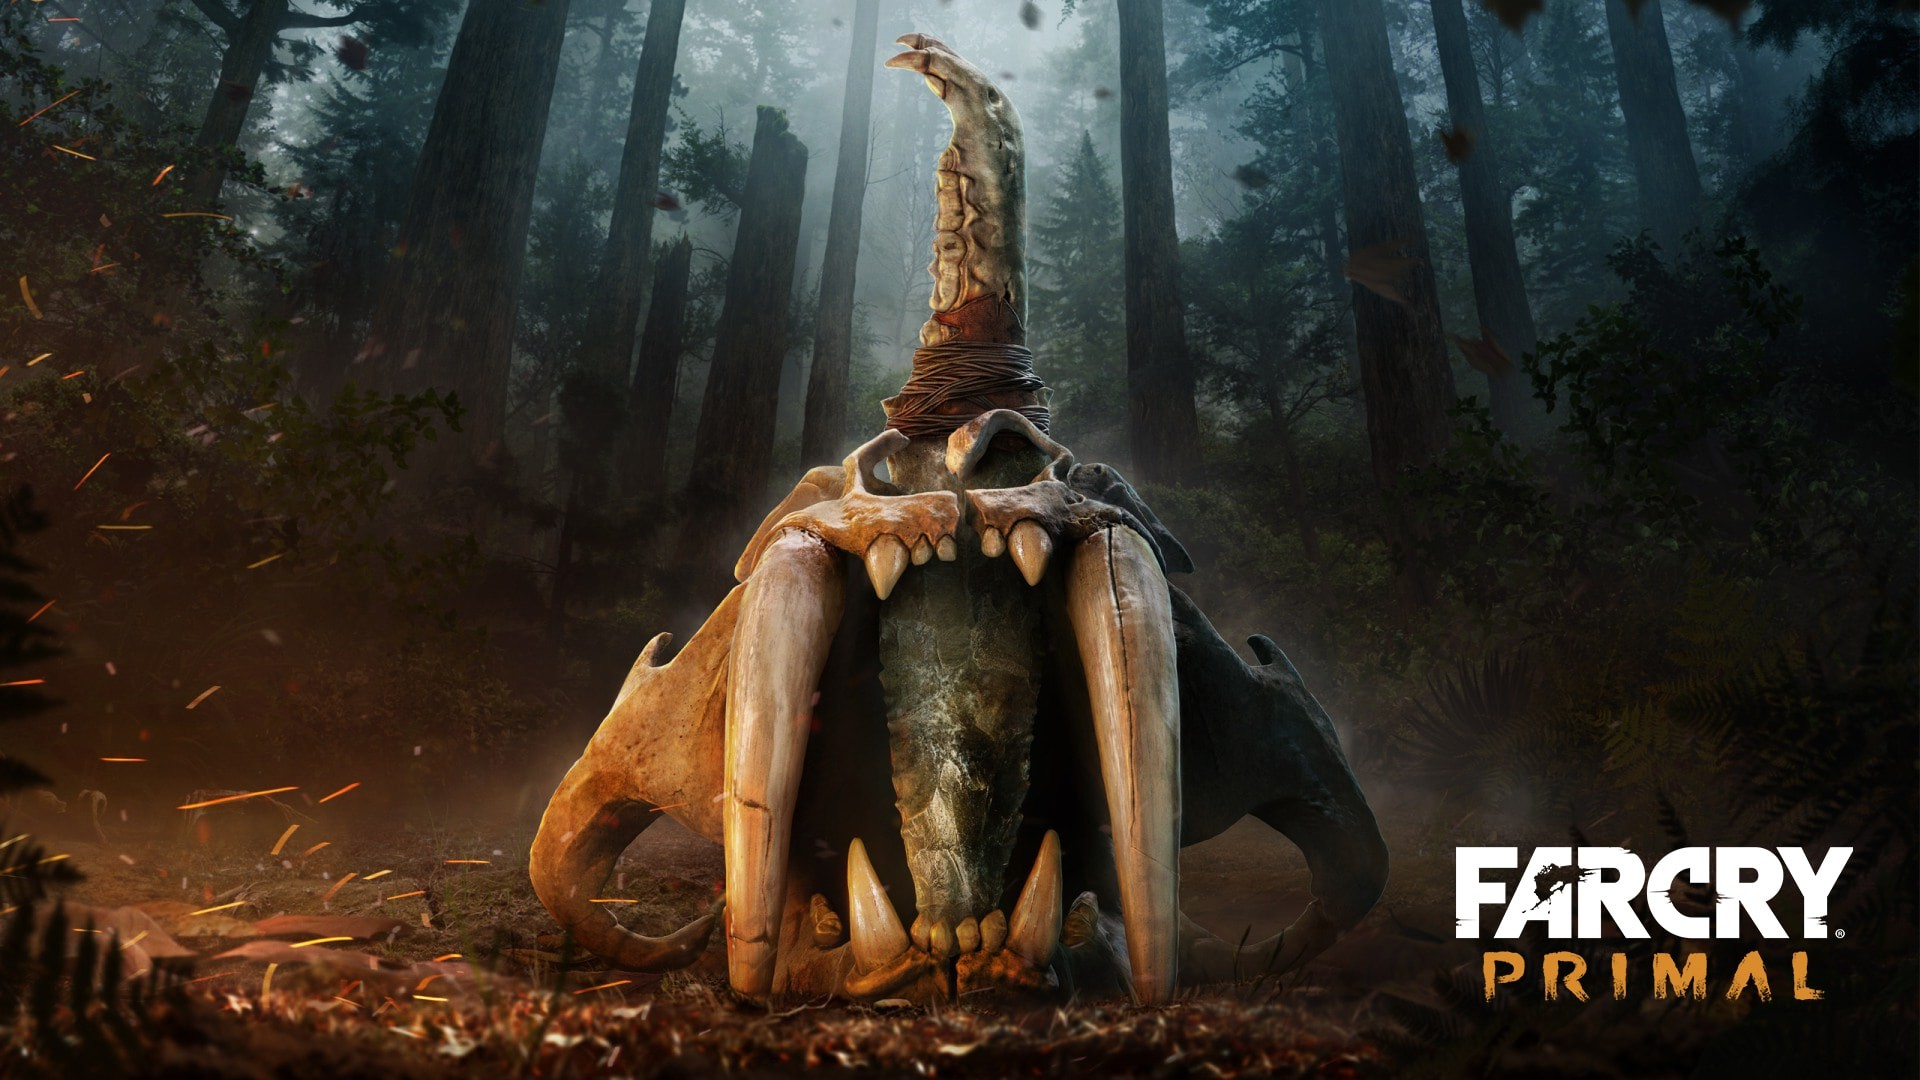 1920x1080 Far Cry Primal widescreen wallpapers